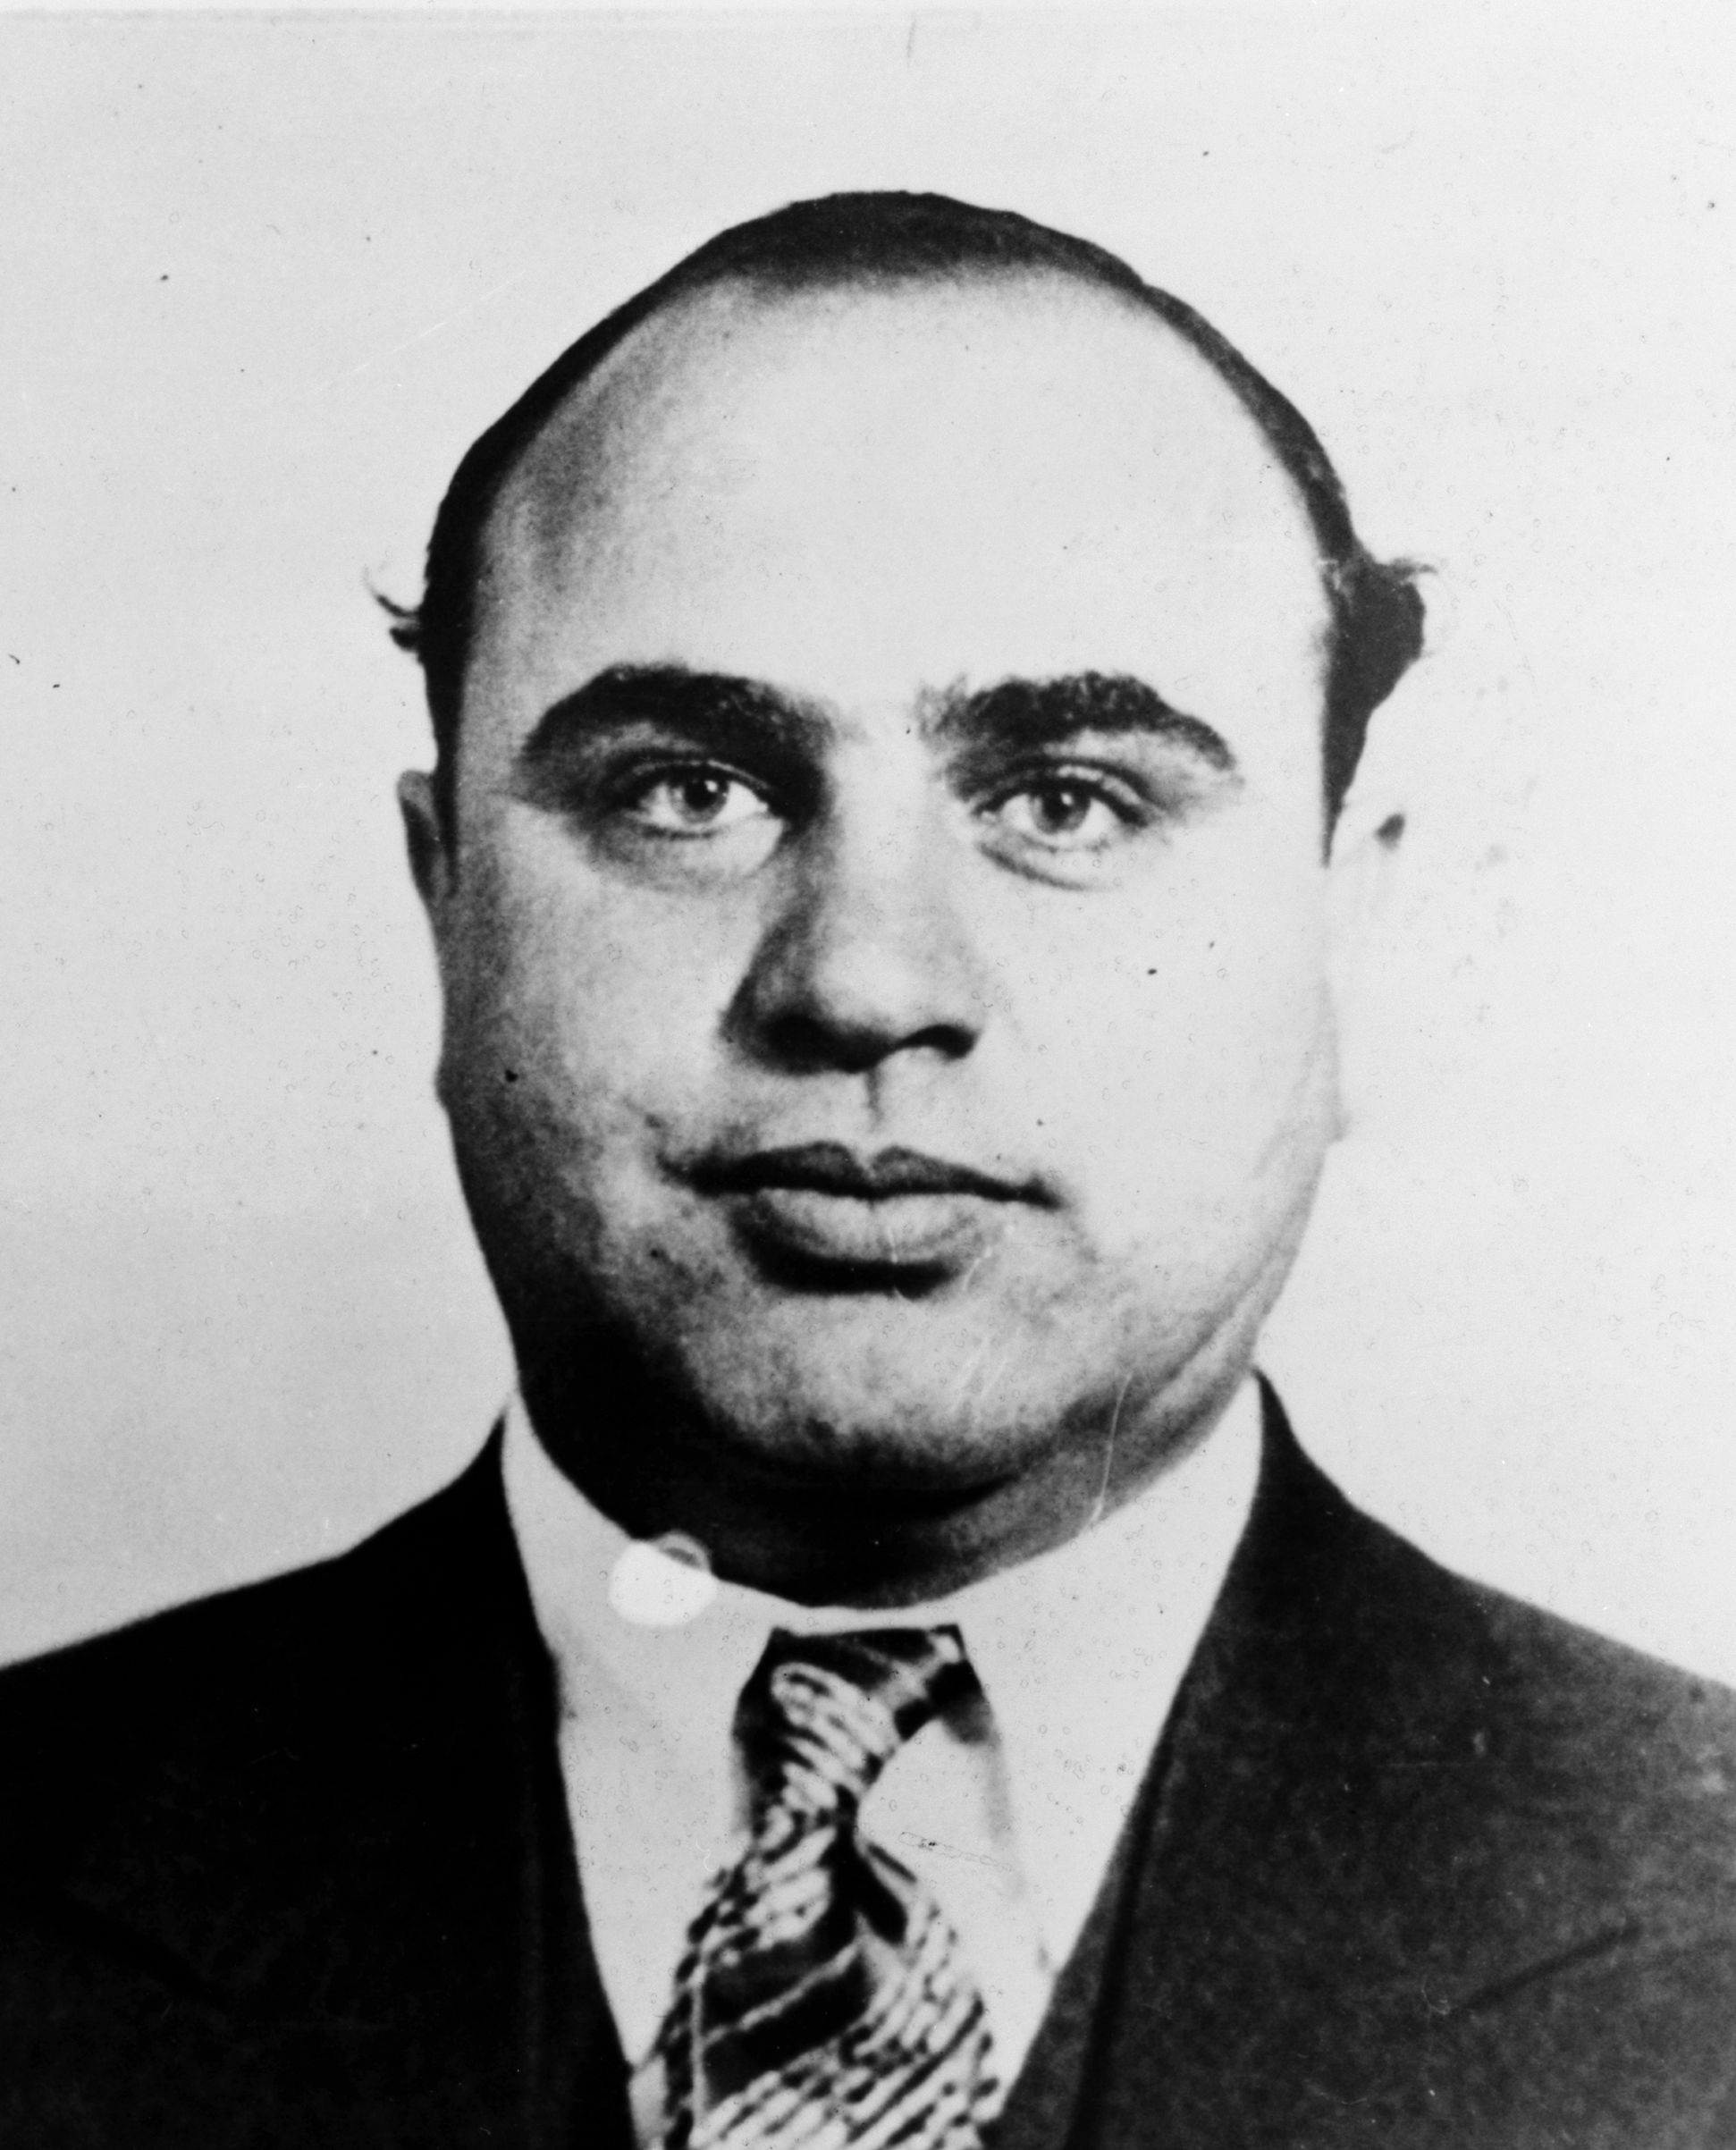 Al Capone in Miami – Part 4 of 4